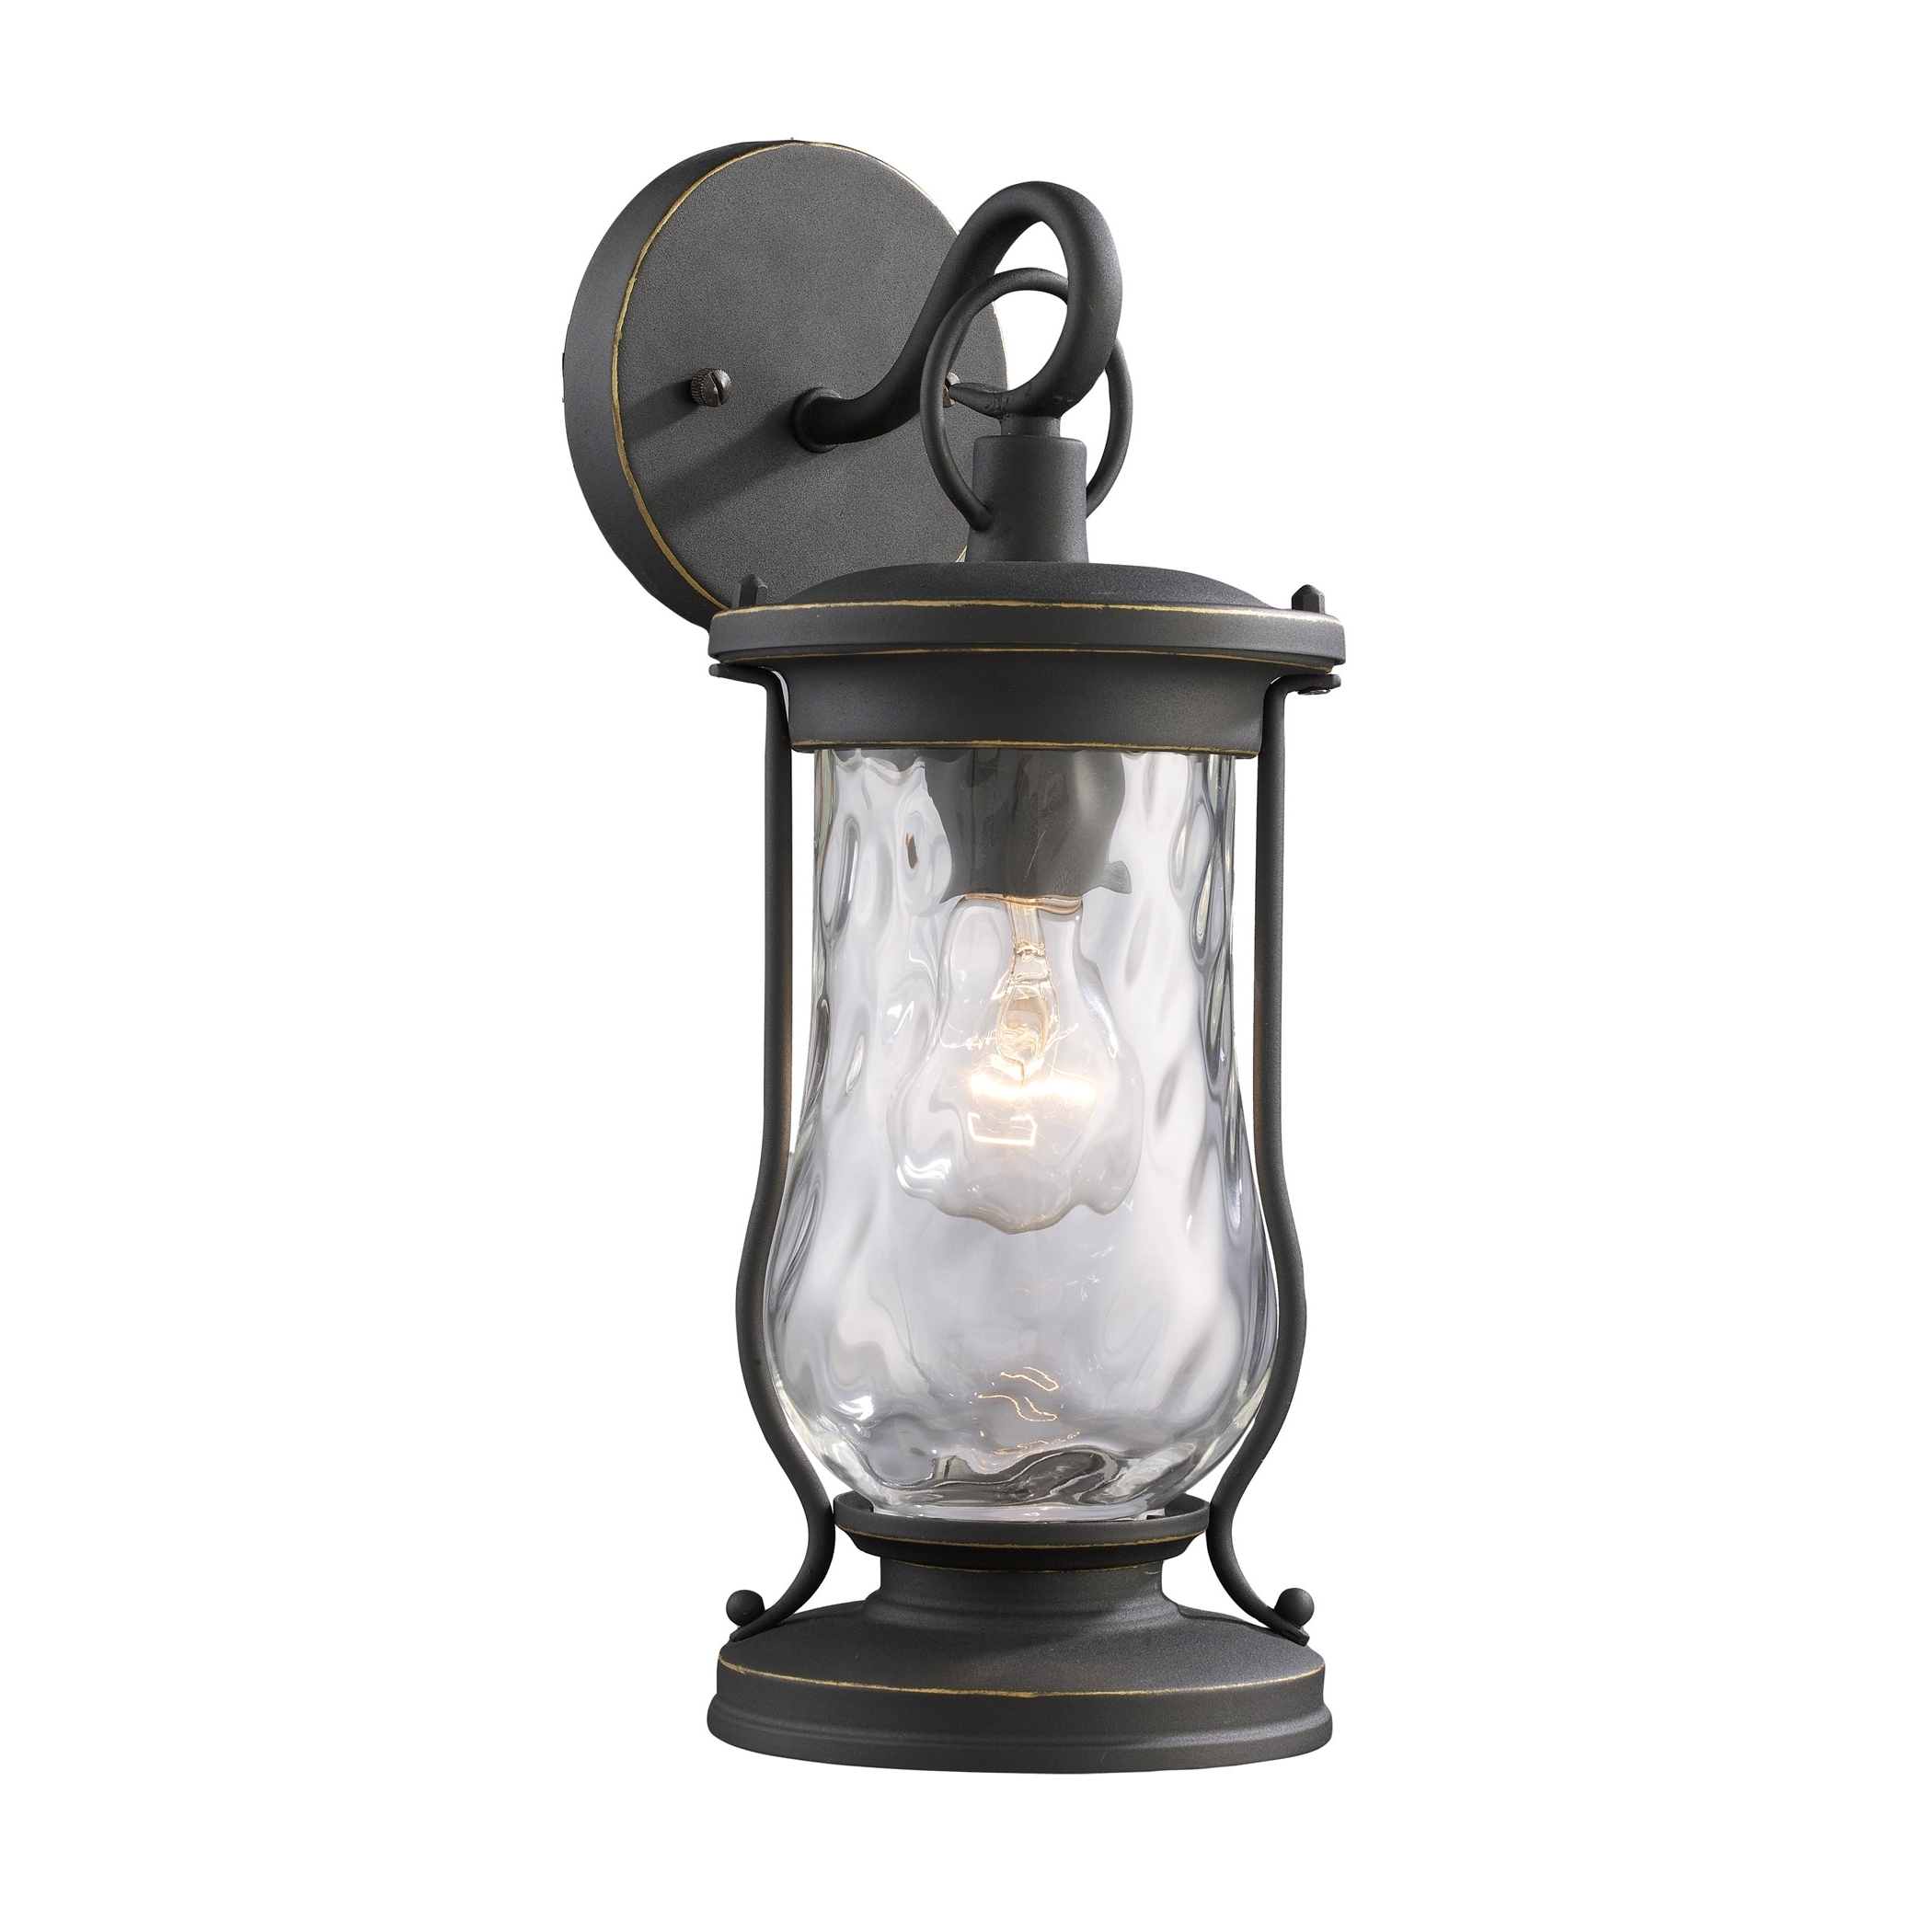 Modern Garden Porch Light Fixtures At Wayfair Inside Well Liked Outdoor Wall Lighting Wayfair Farmstead 1 Light Sconce ~ Loversiq (View 13 of 20)